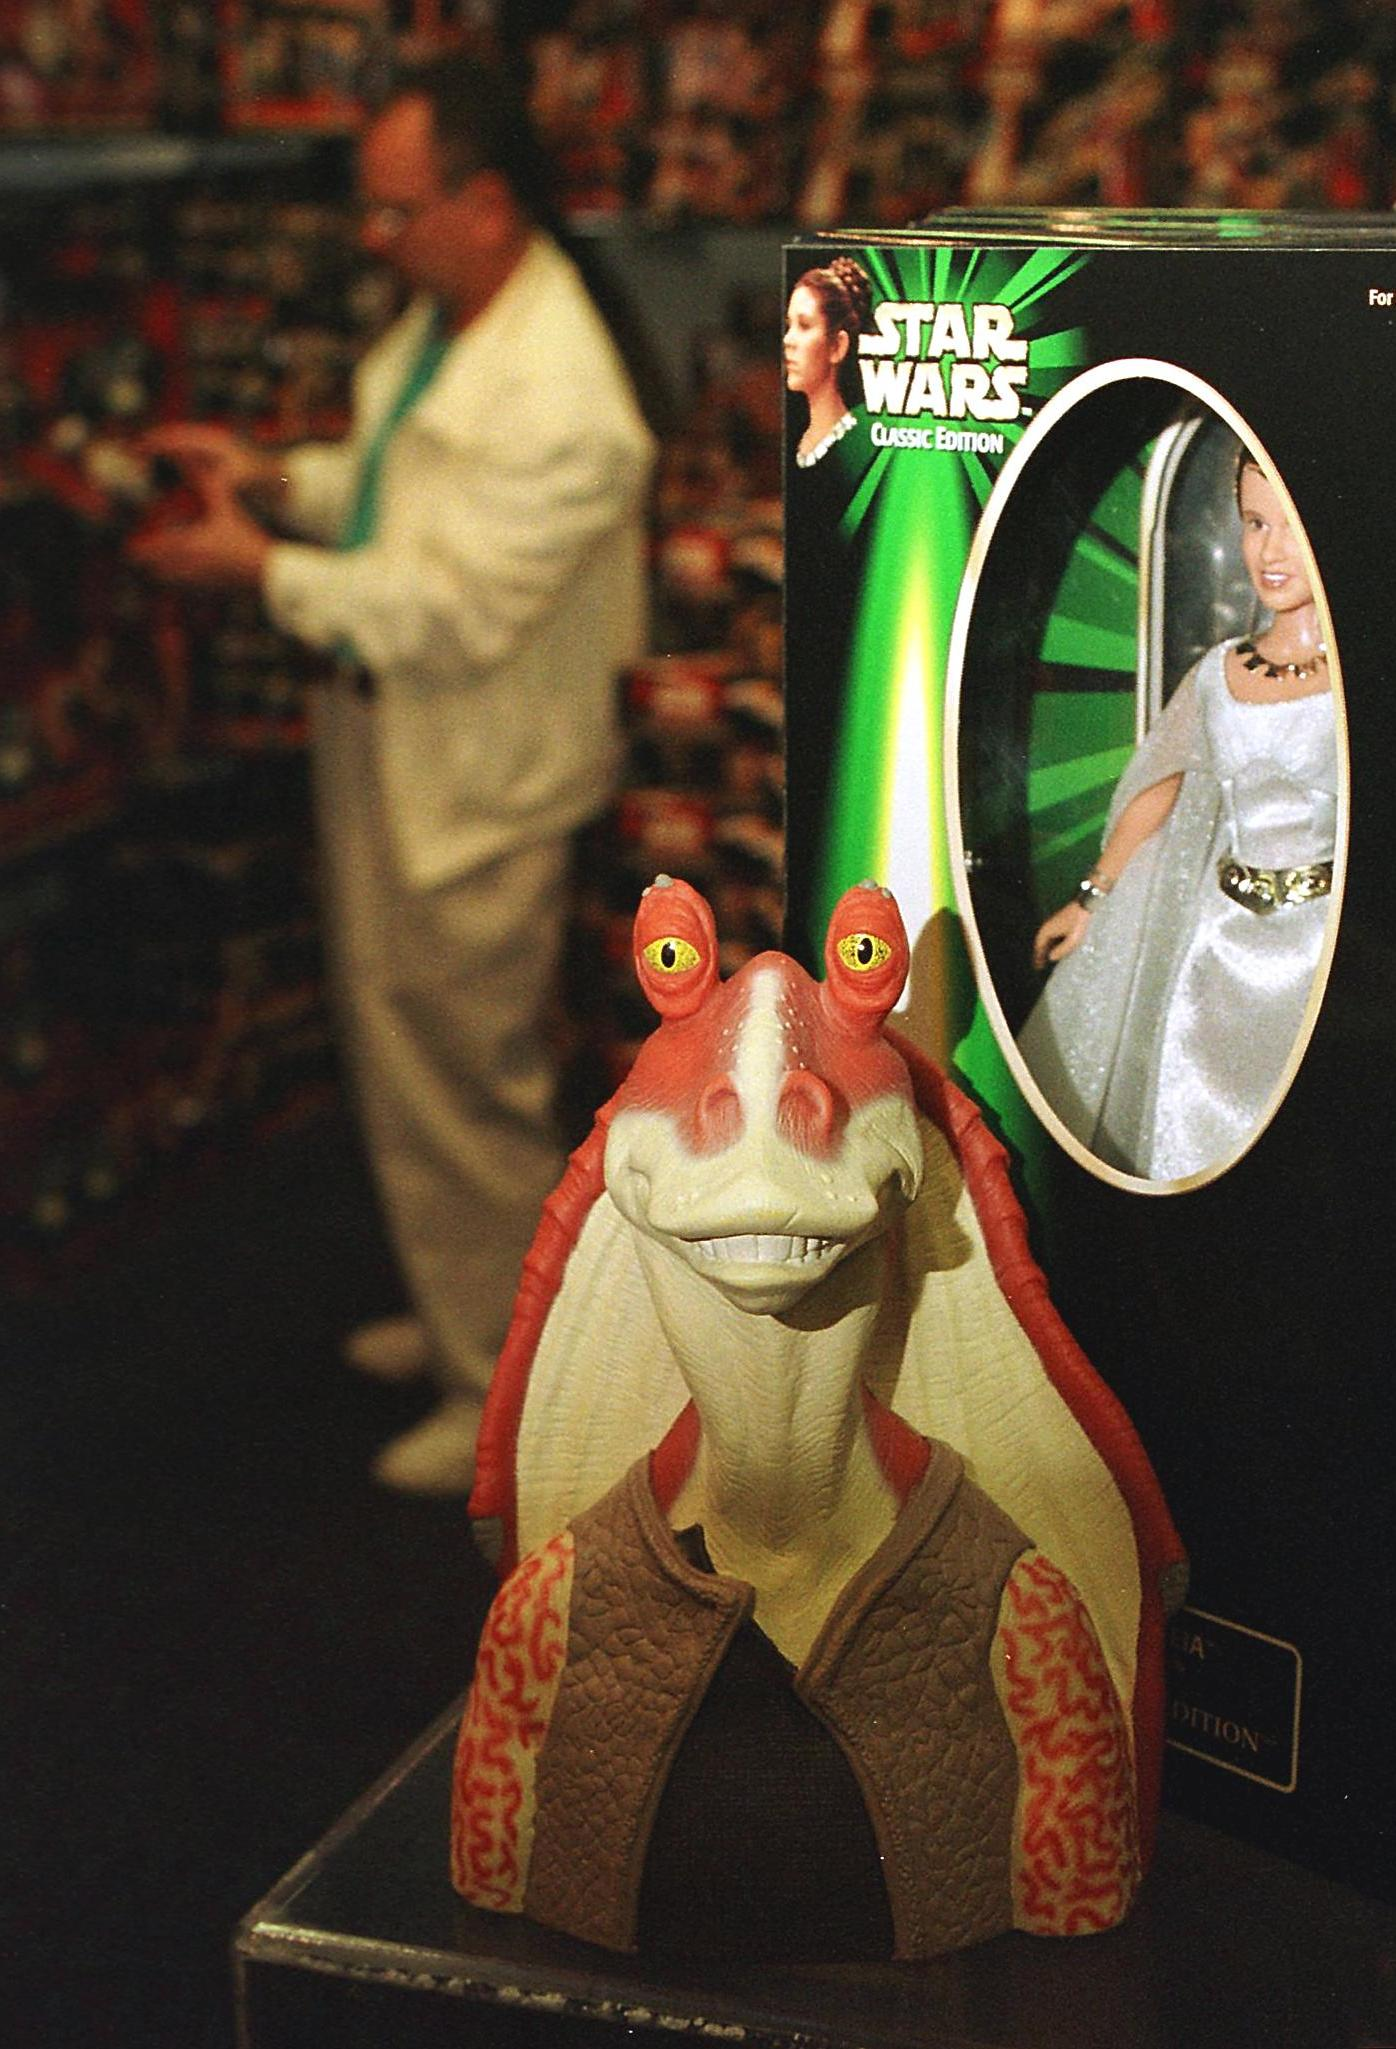 A figure of the character called Jar Jar Binks (C) from the Star Wars movie The Phantom Menace sits next to a figure of Princess Leia (R) from the original Star Wars trilogy in a display at FAO Schwartz 07 May 1999 in Garden City, NY.